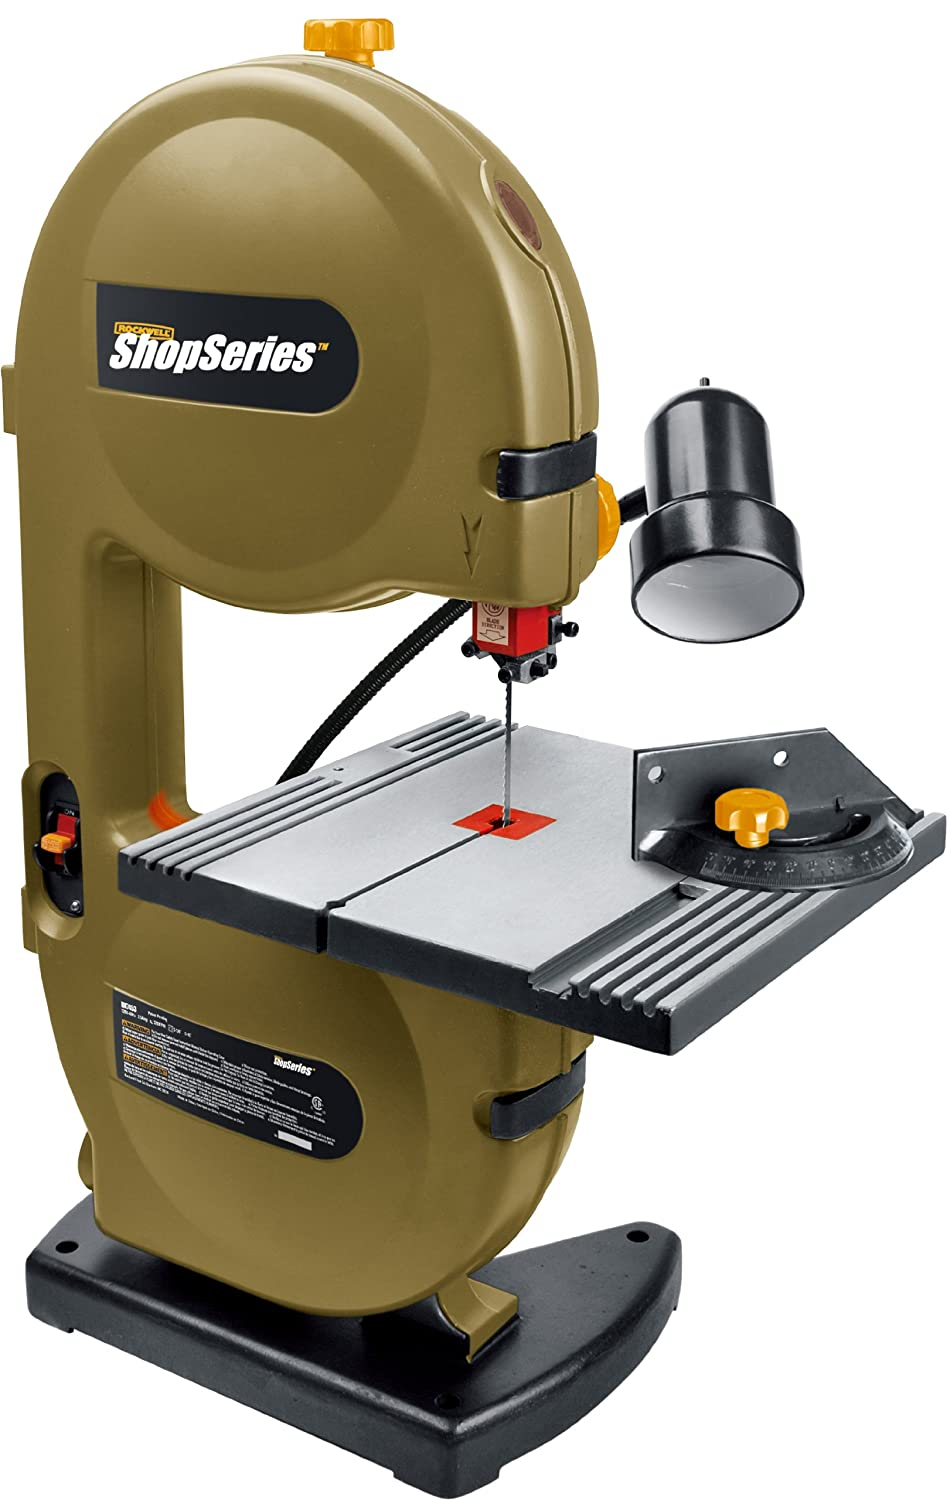 Rockwell RK7453 Shop Series 9-Inch Band Saw Reviews